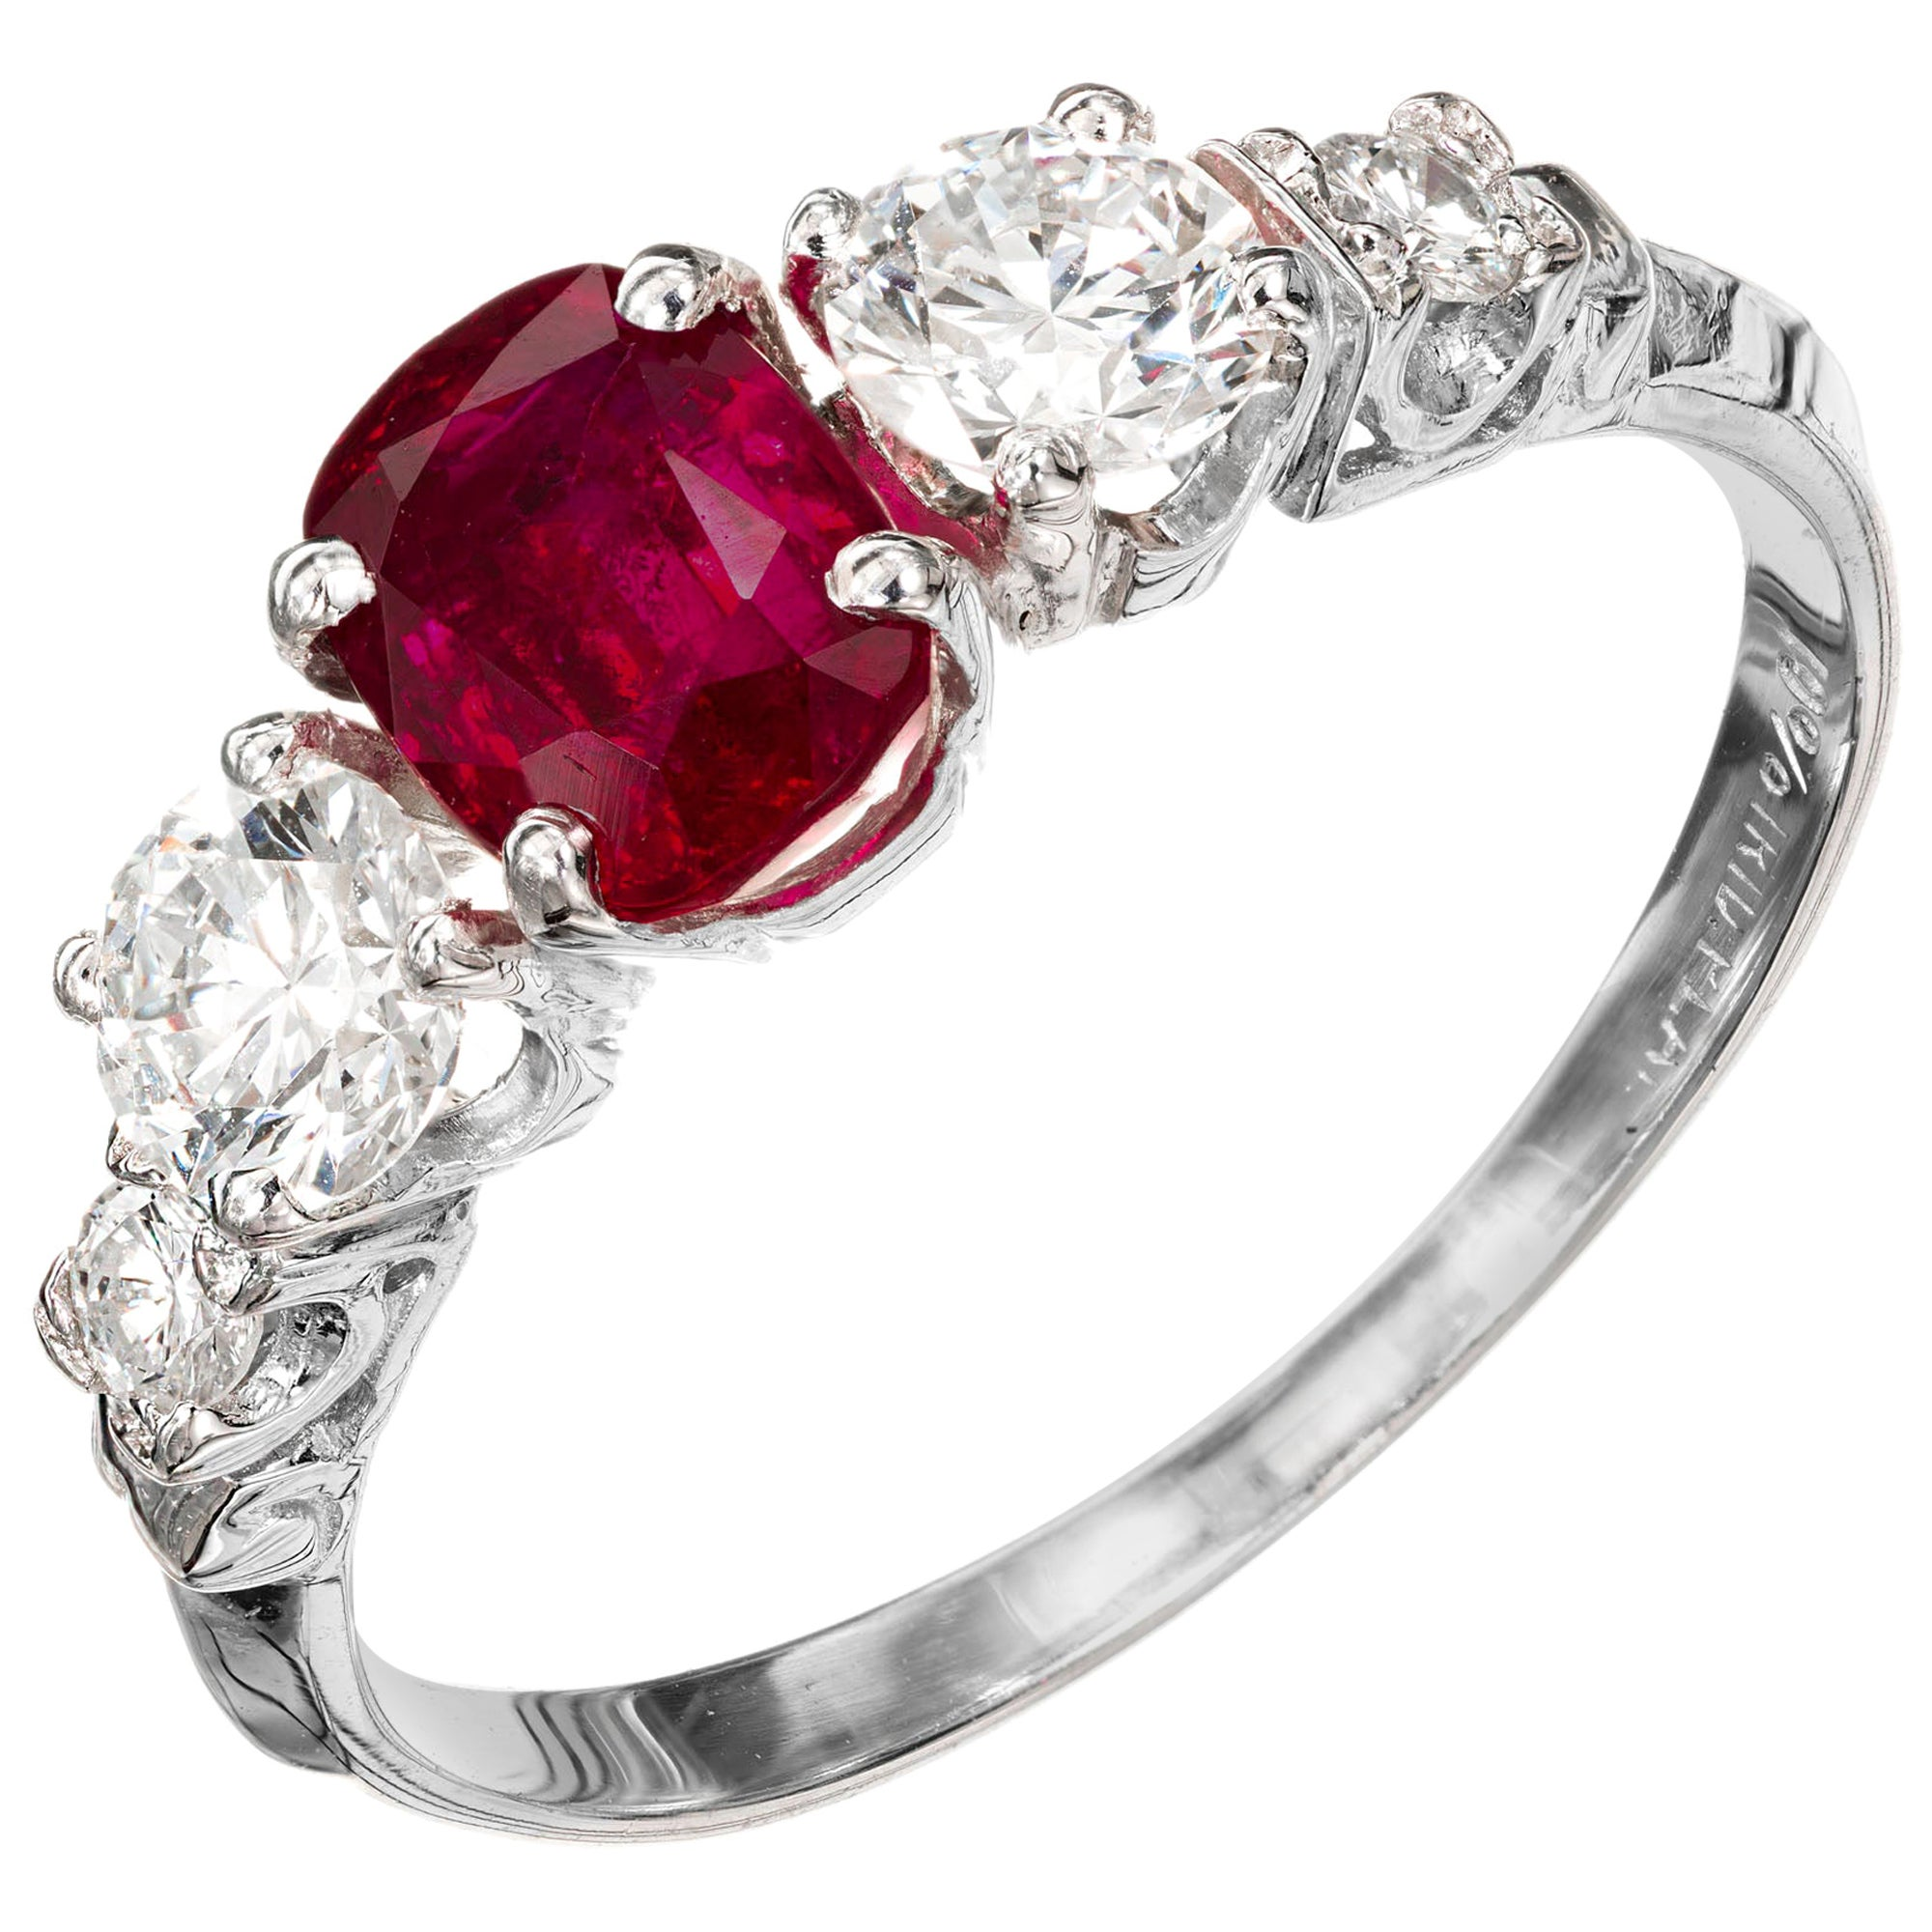 1.02 Carat Ruby Diamond Platinum Three-Stone Engagement Ring